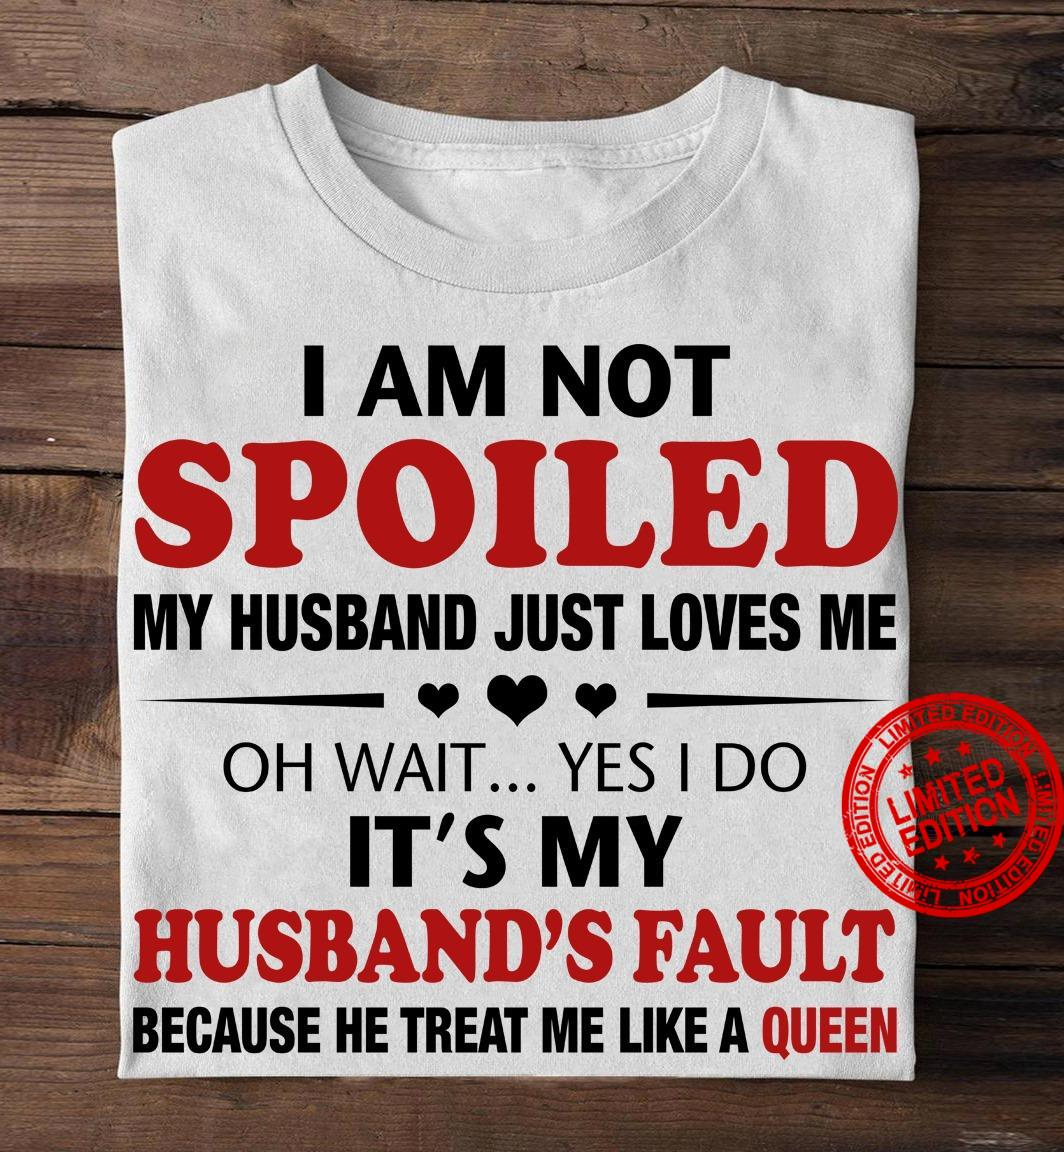 I Am Not Spoiled My Husband Just Loves Me Oh Wait Yes I Do It's My Husband's Fault Because He Treat Me Like A Queen Shirt